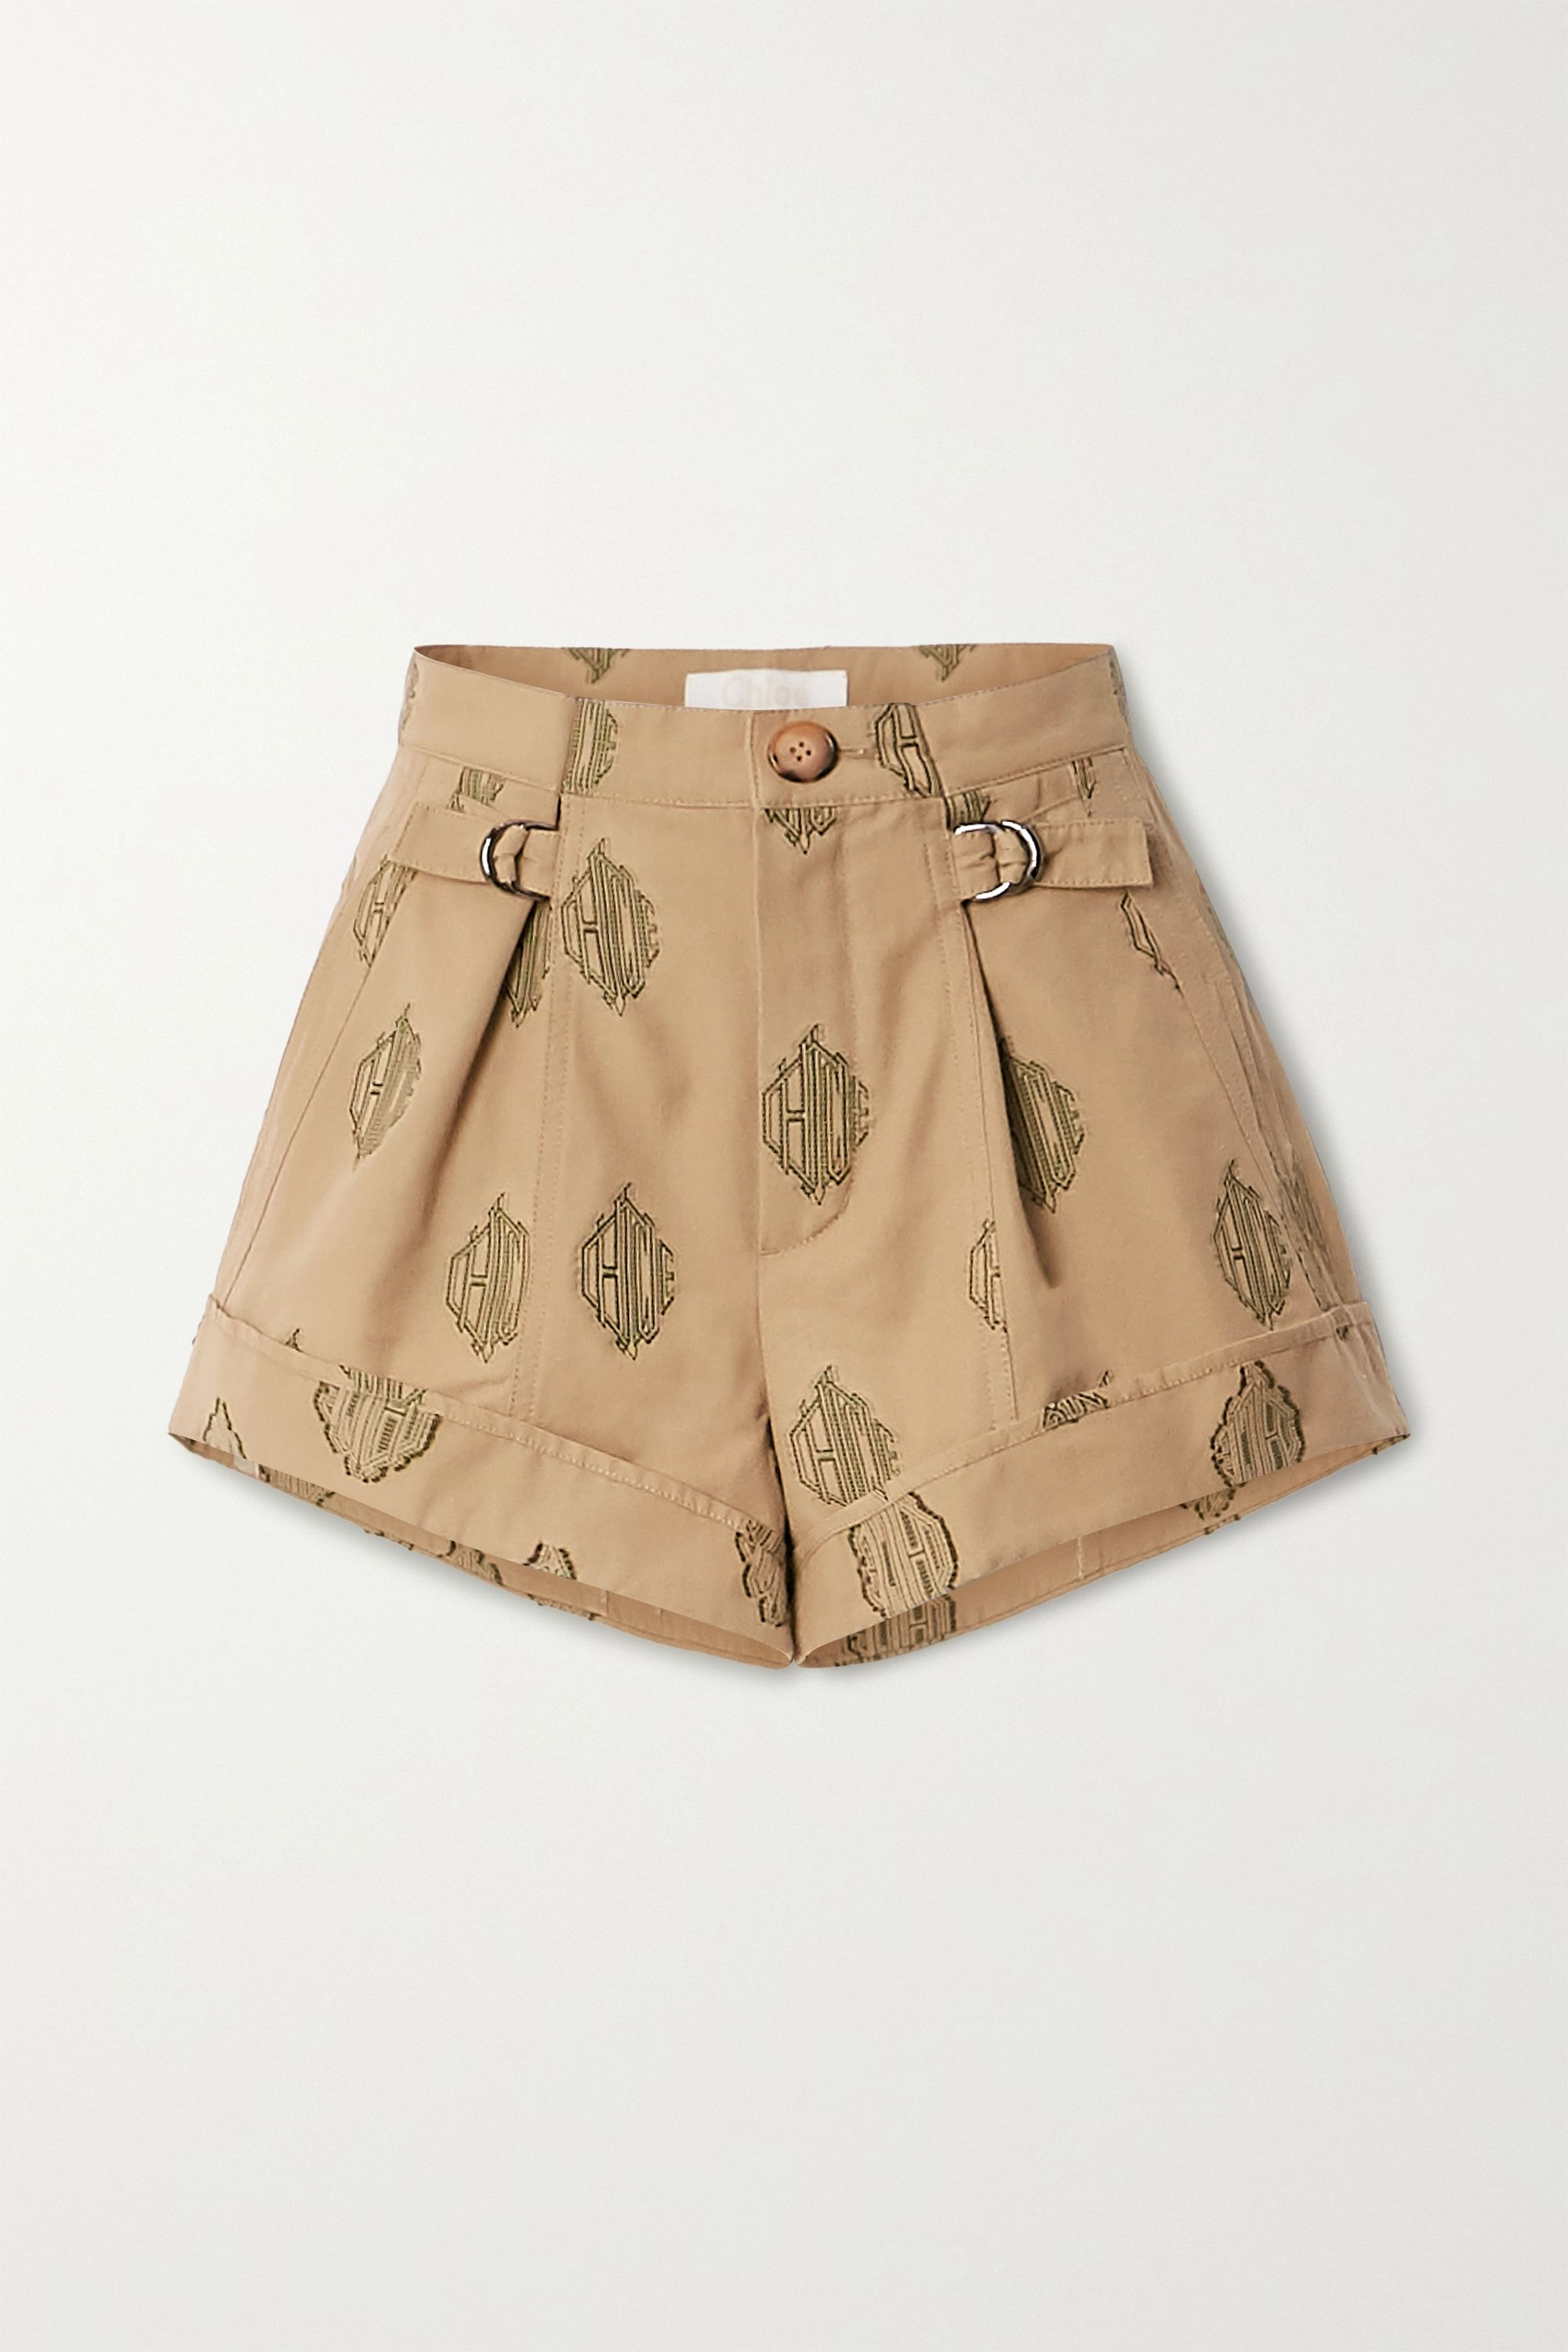 Chloé Embroidered pleated cotton shorts